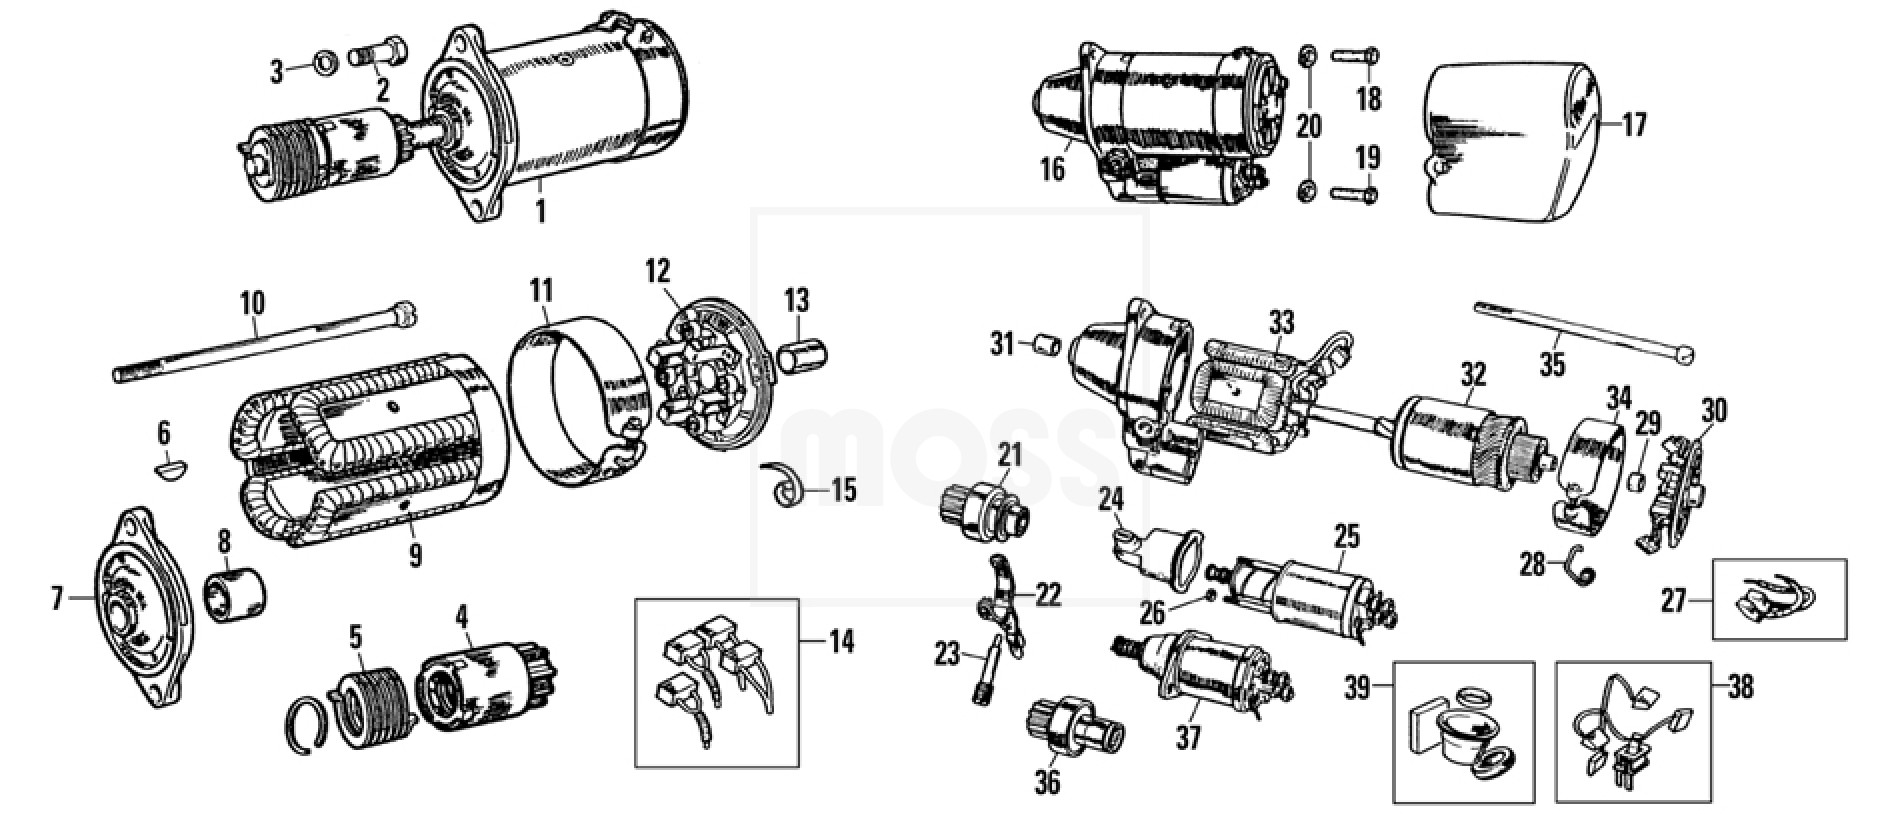 1997 ford thunderbird wiring diagram vehicle diagrams symbols mazda b2300 starter great installation of besides chevy truck likewise 1962 c10 wipers